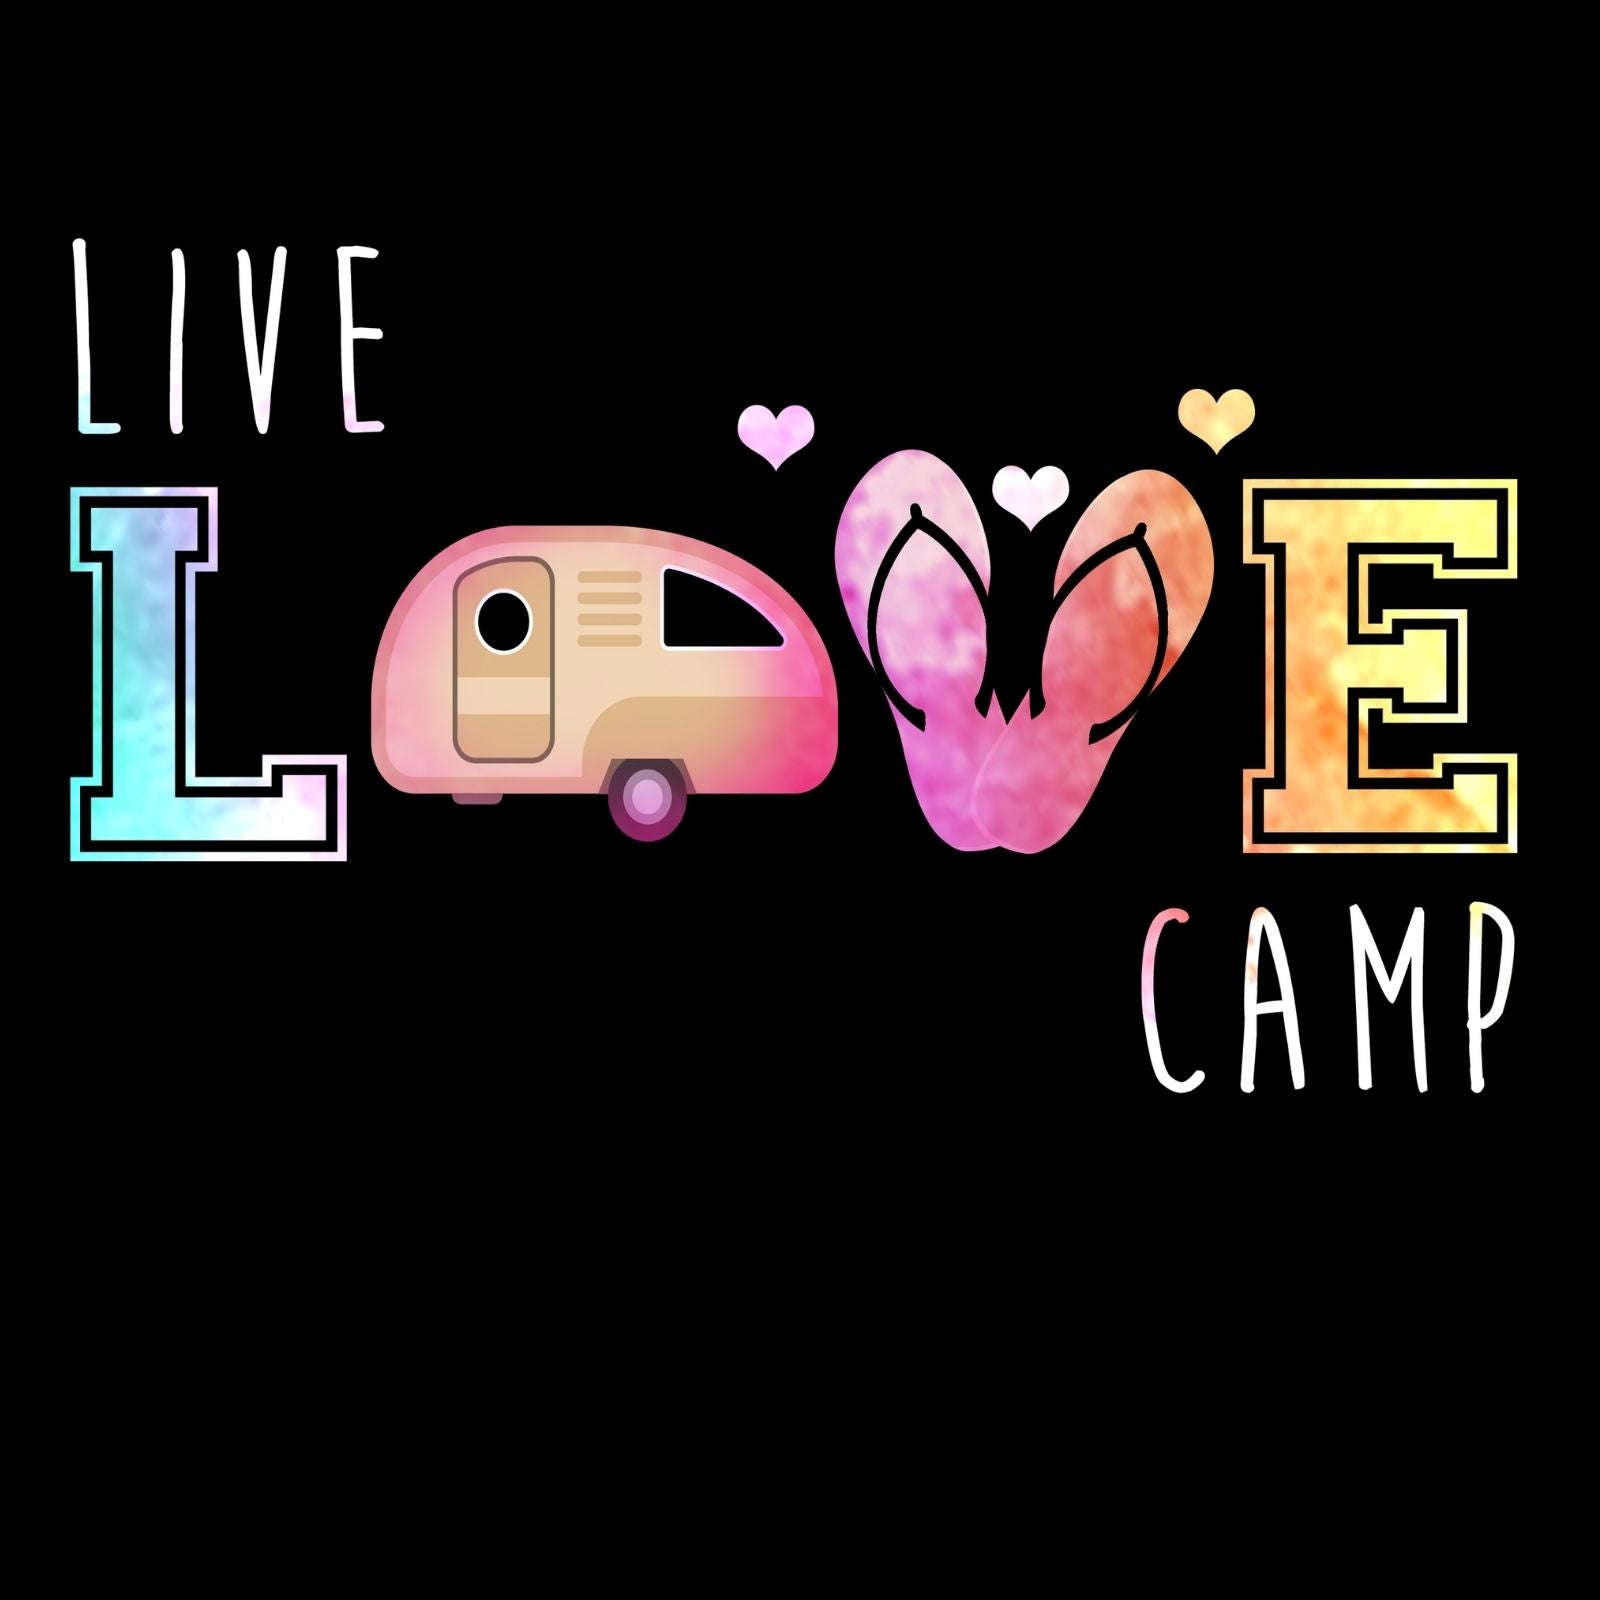 LIVE LOVE CAMP - Bastard Graphics